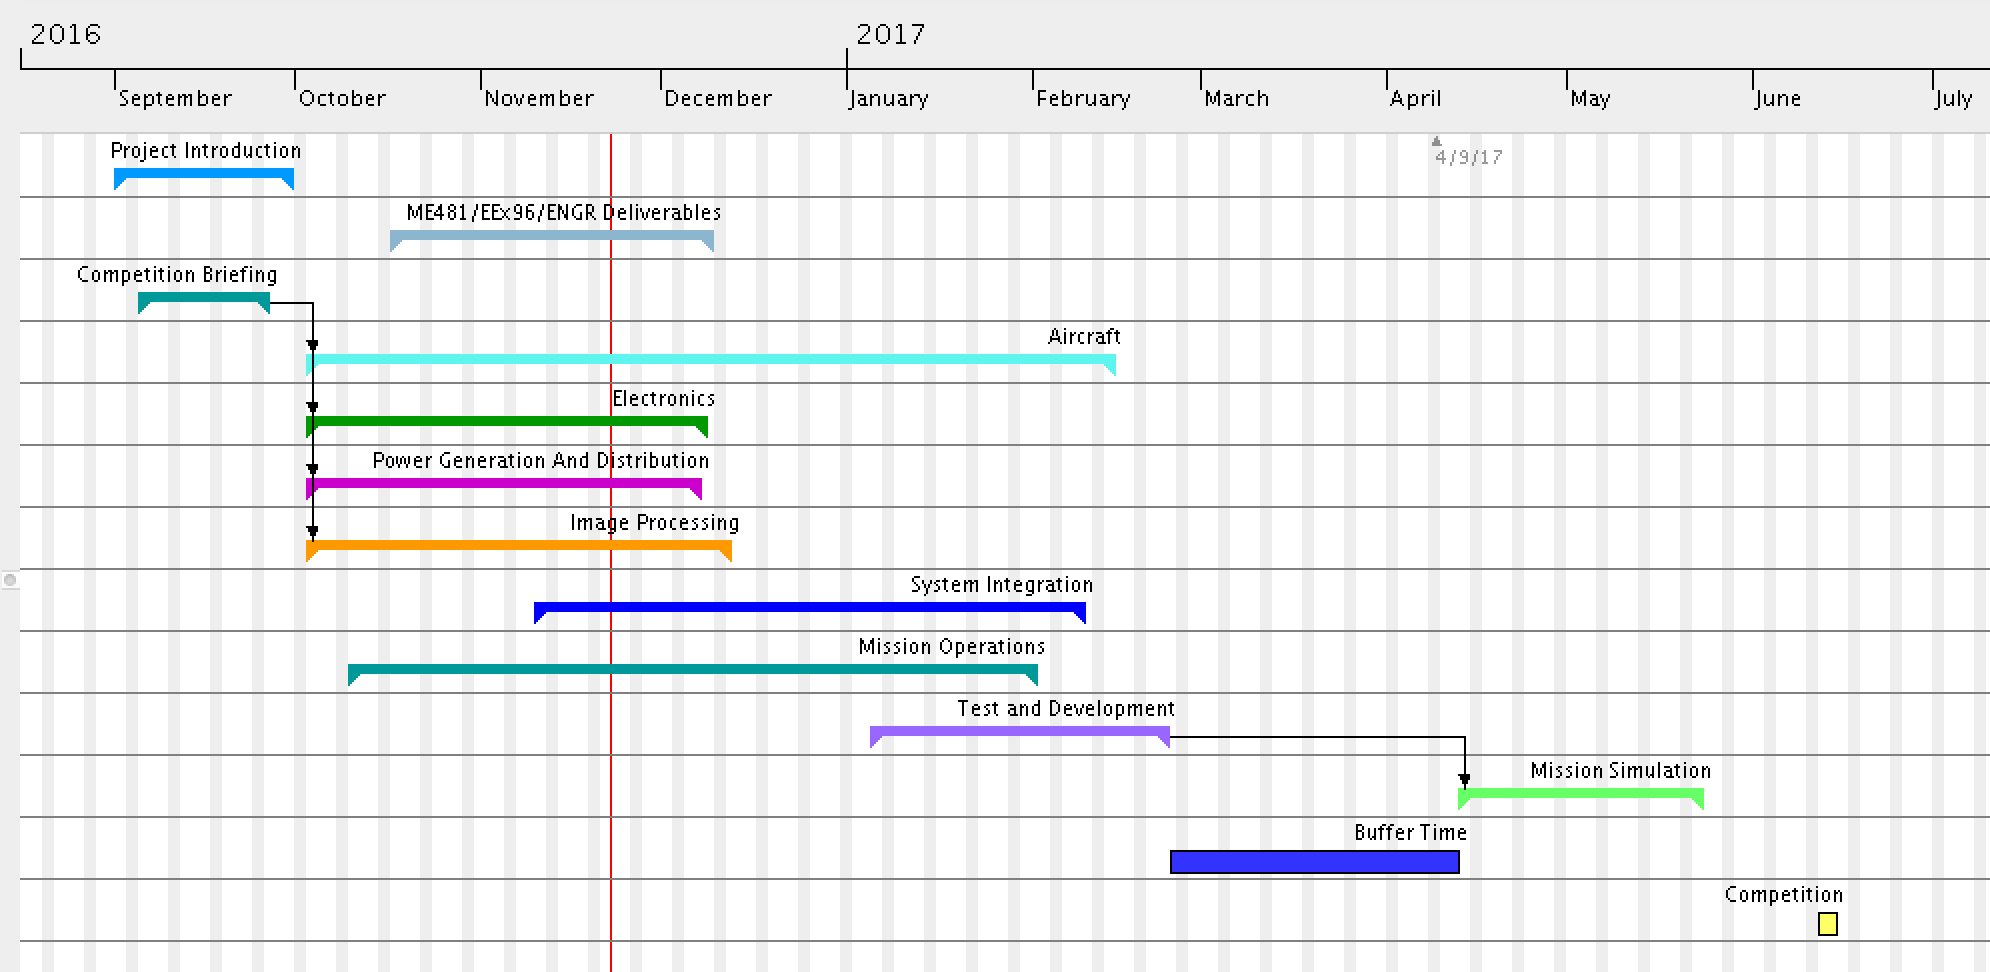 vipuhdt_gantt_chart_website_rev2